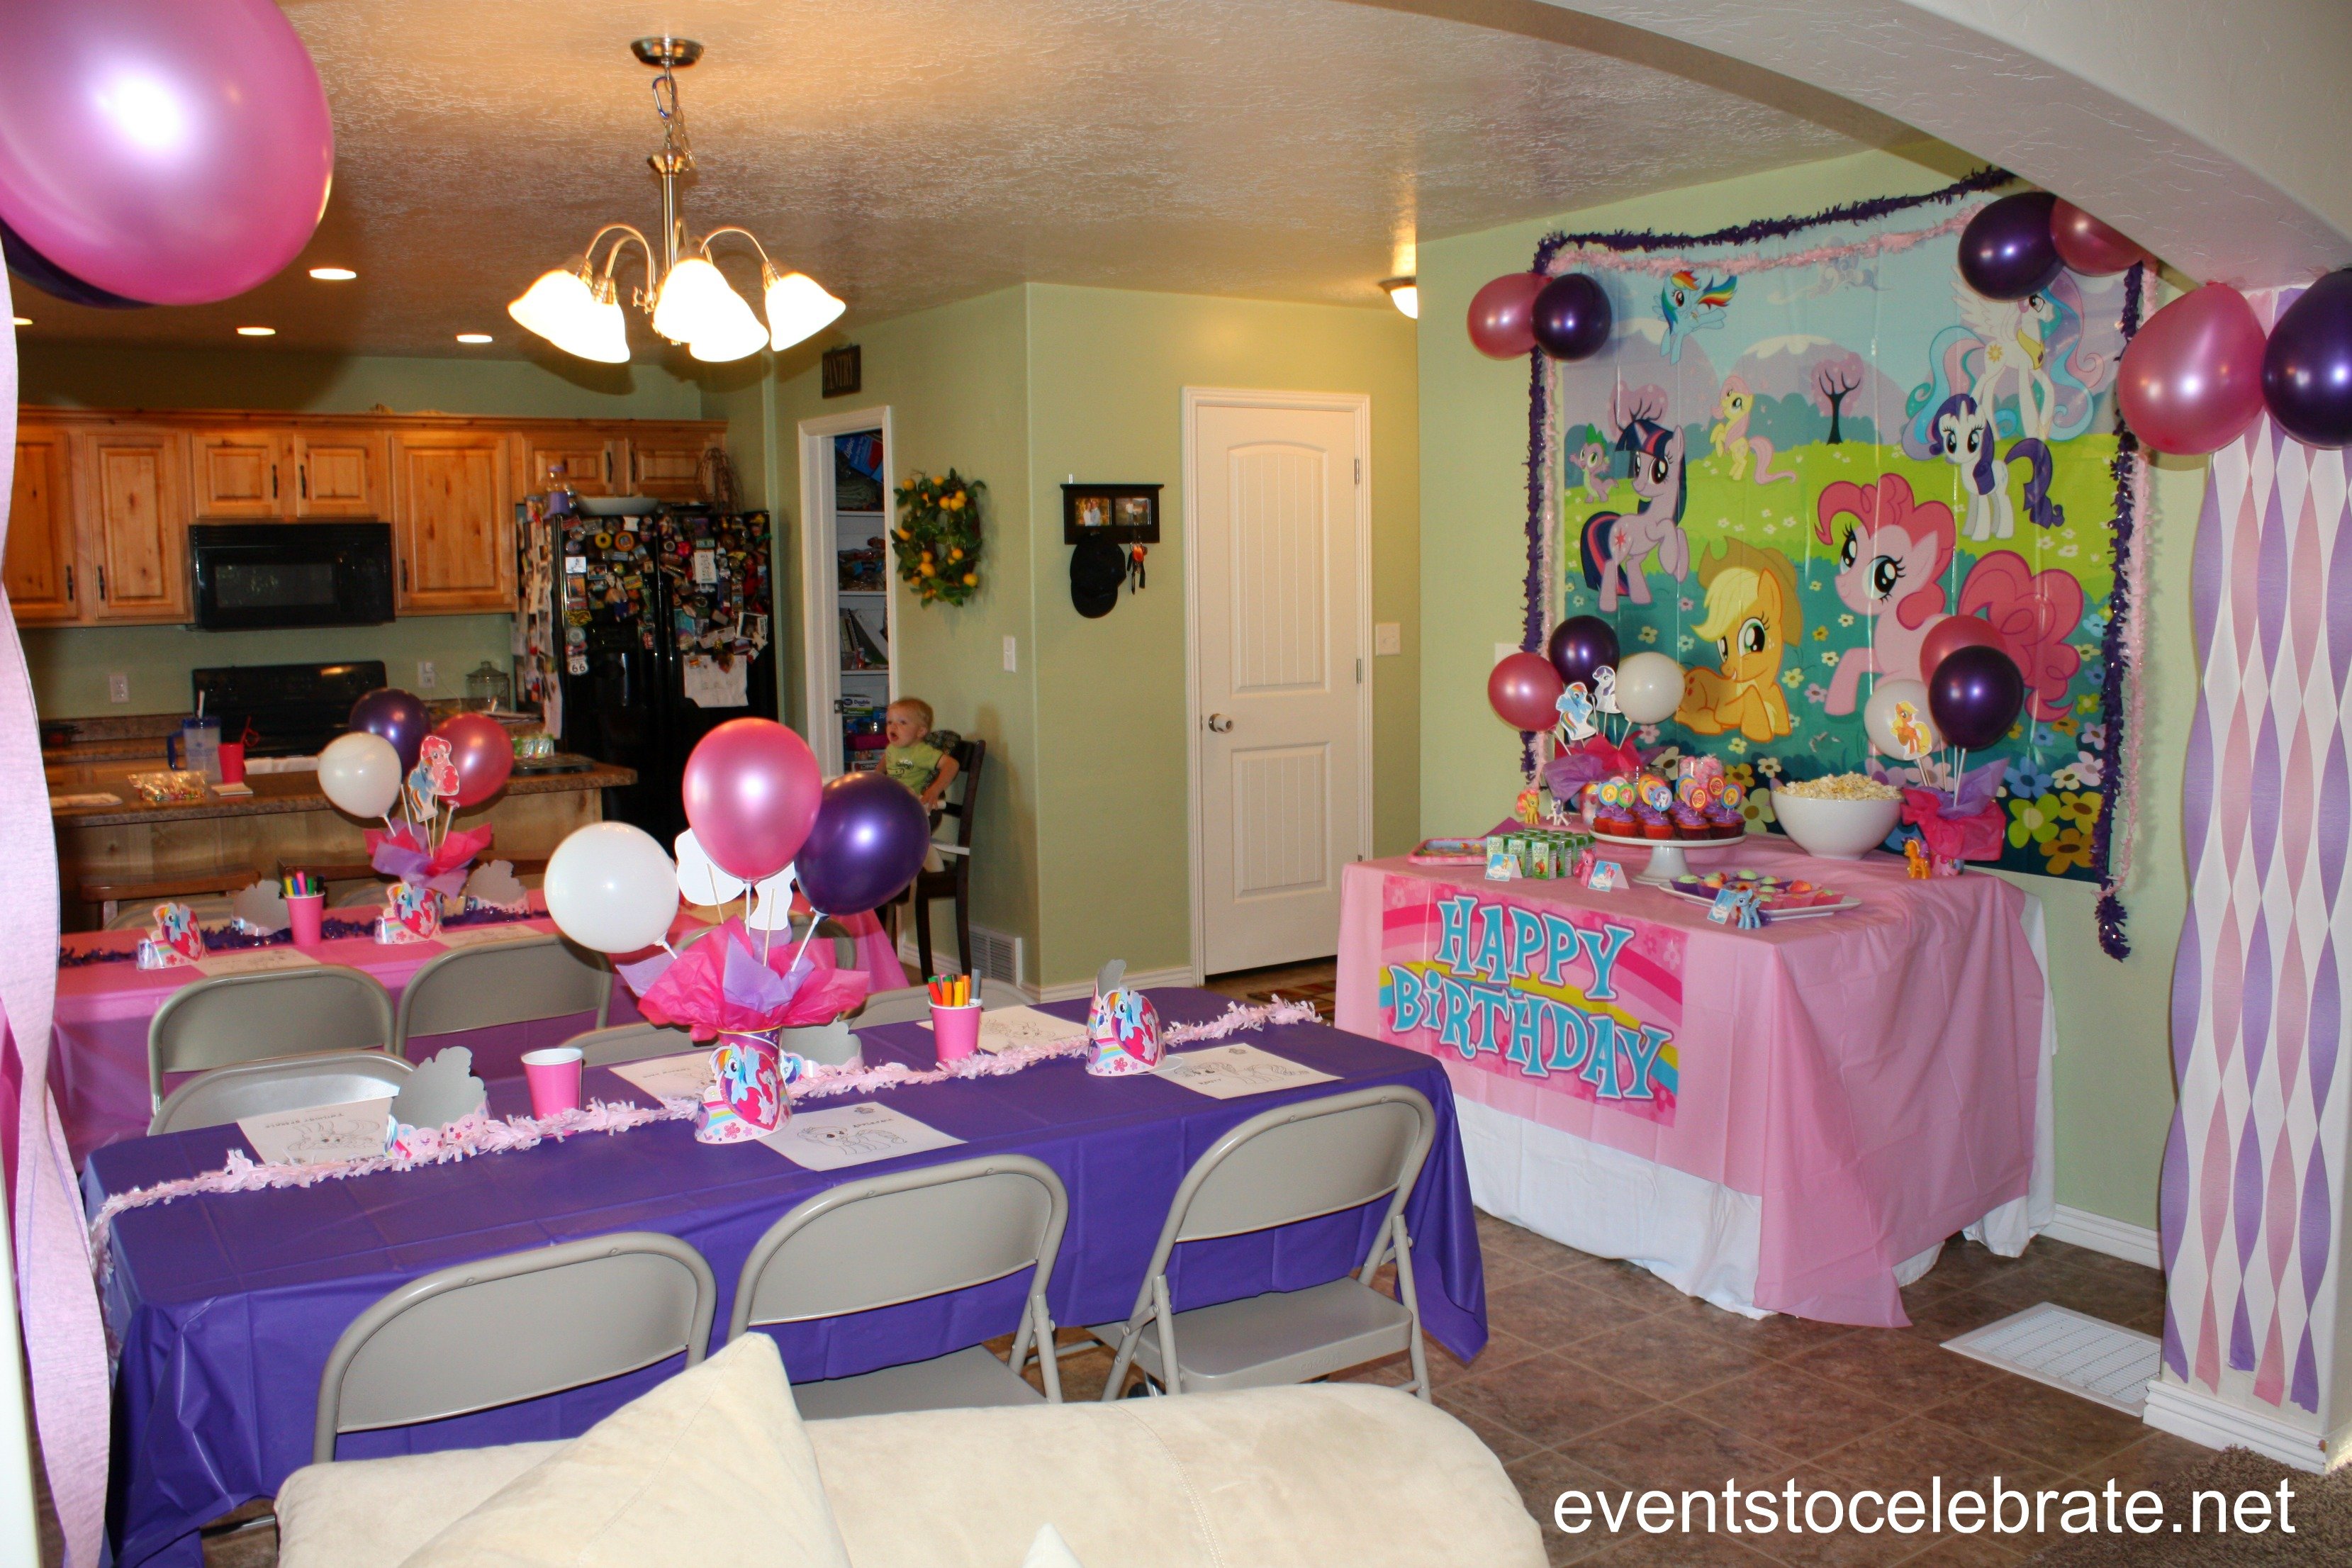 My little pony birthday party crafts -  Crafts My Little Pony Decorations Download